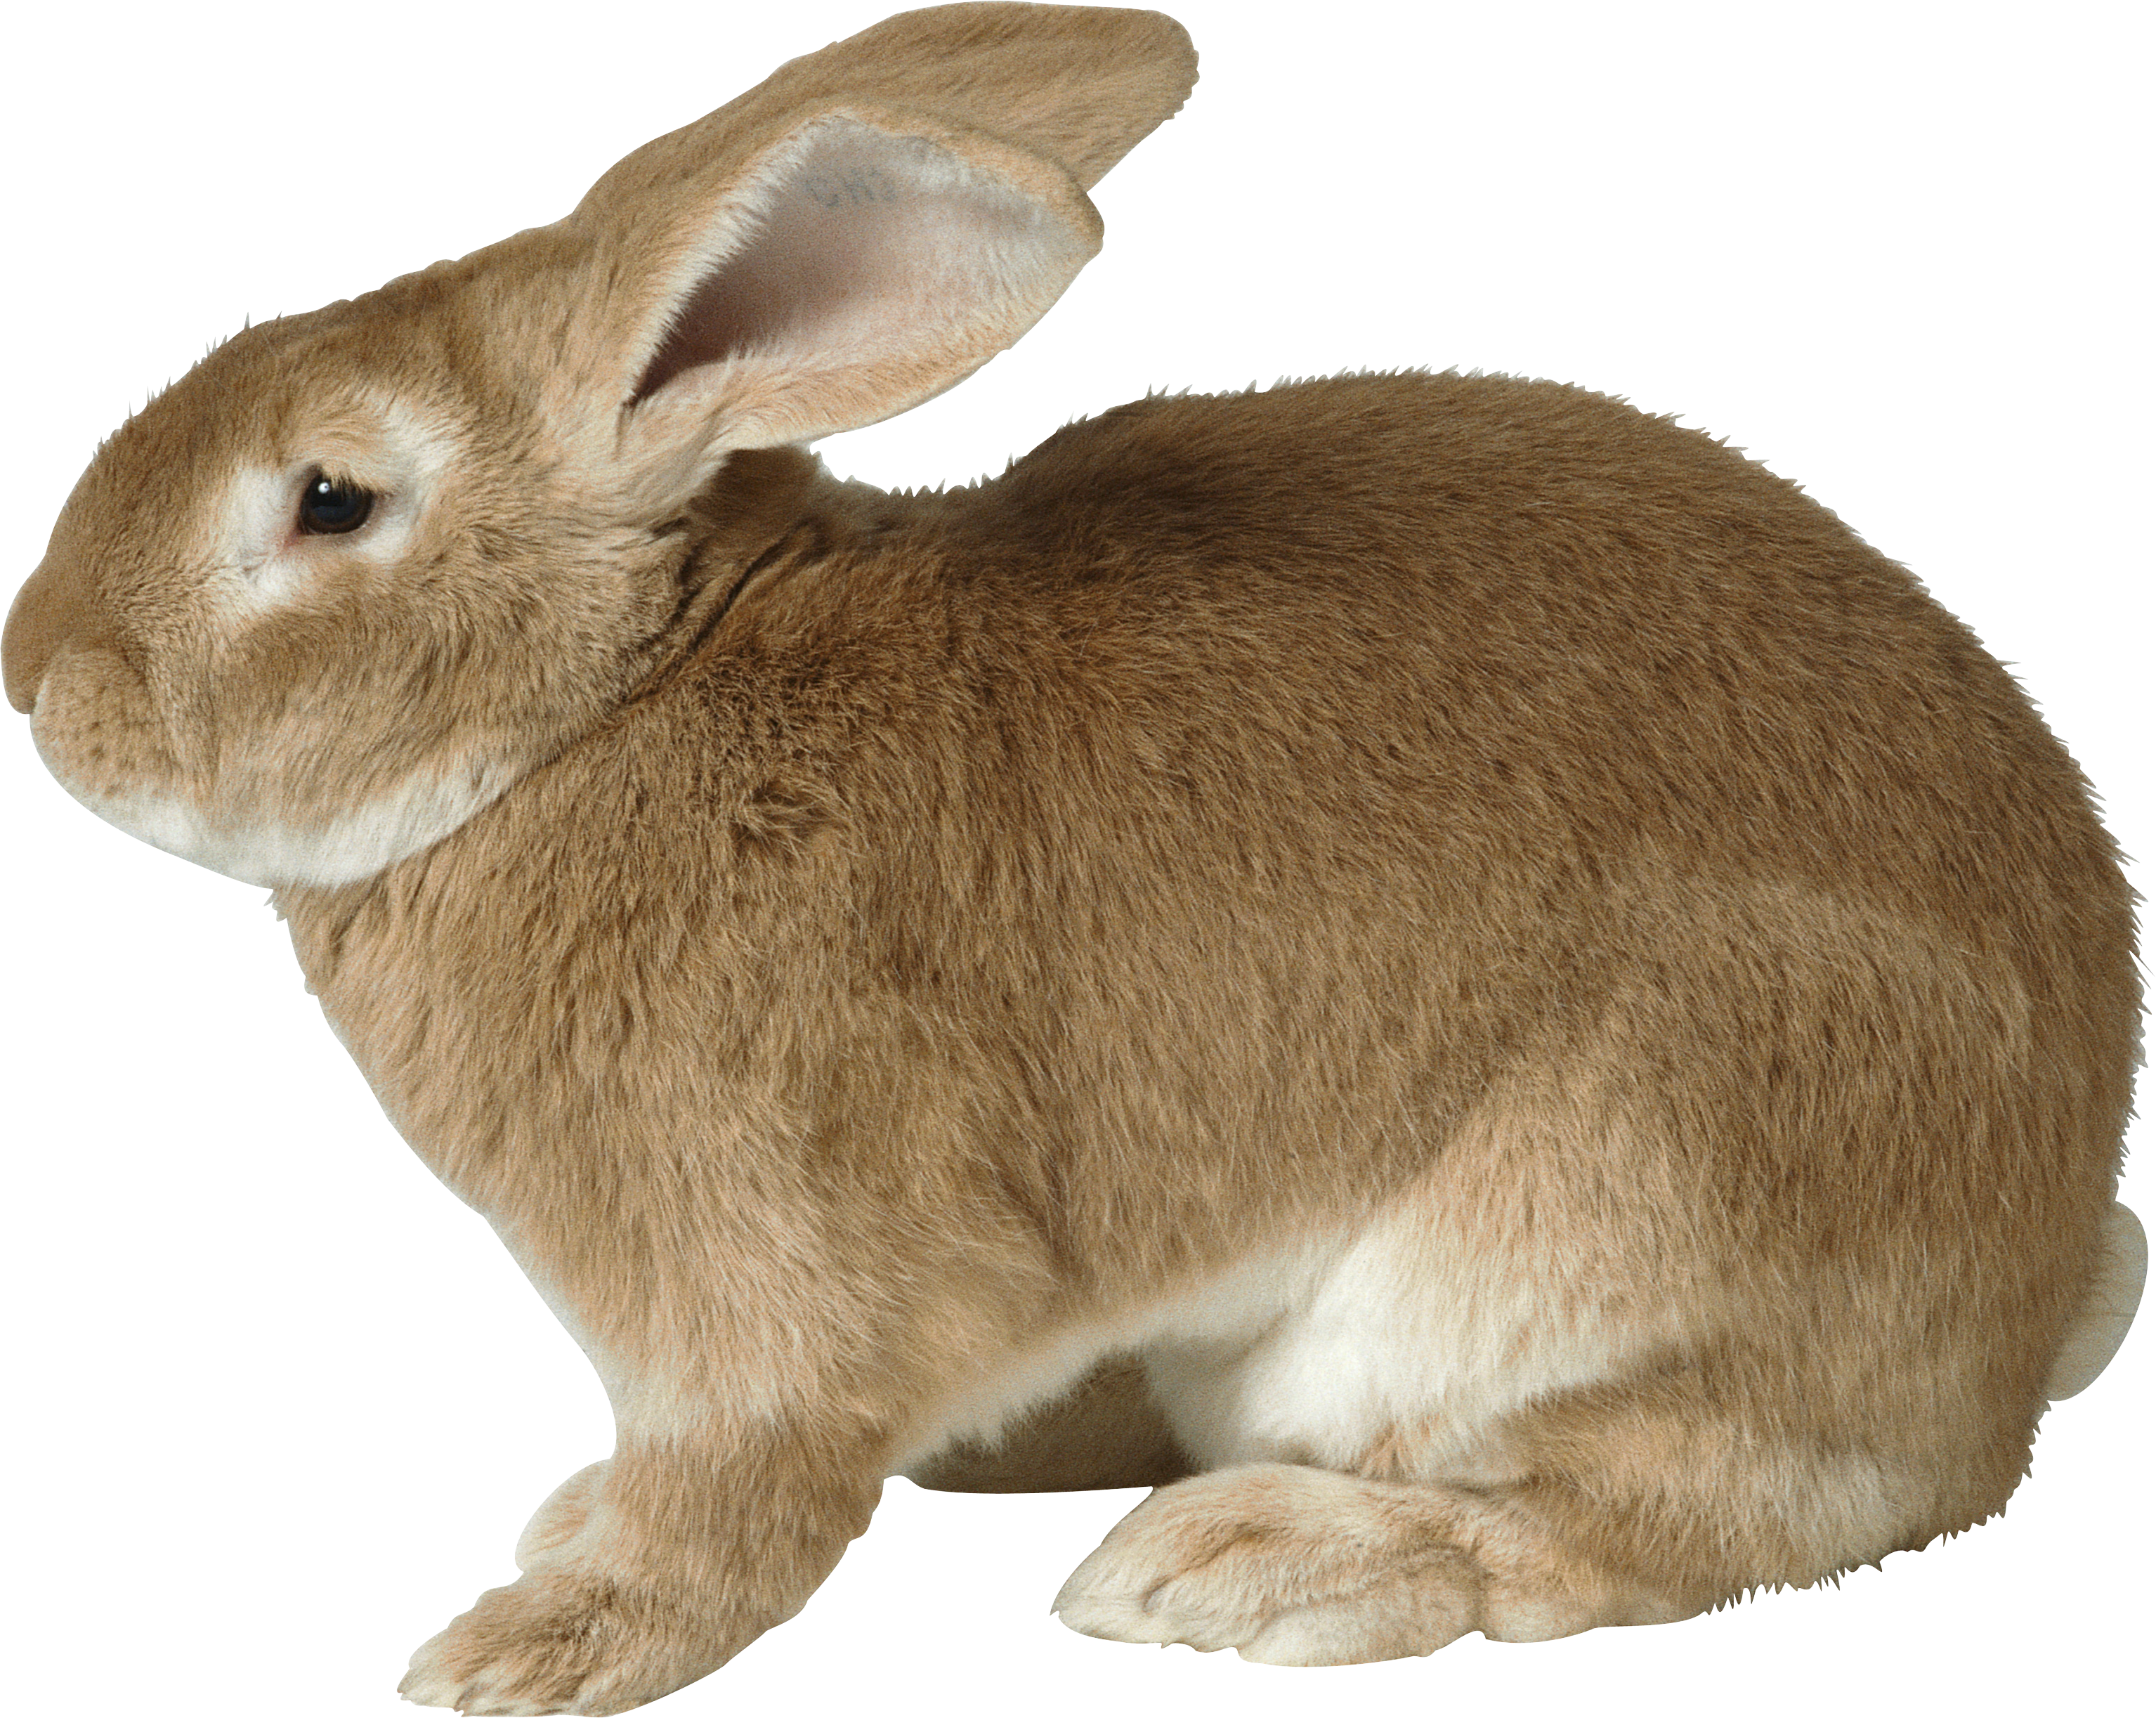 Rabbit Pictures, Concept Art, Character, Google Search, Image, Free, Rabbits,  Searching, Montessori - Rabbit HD PNG